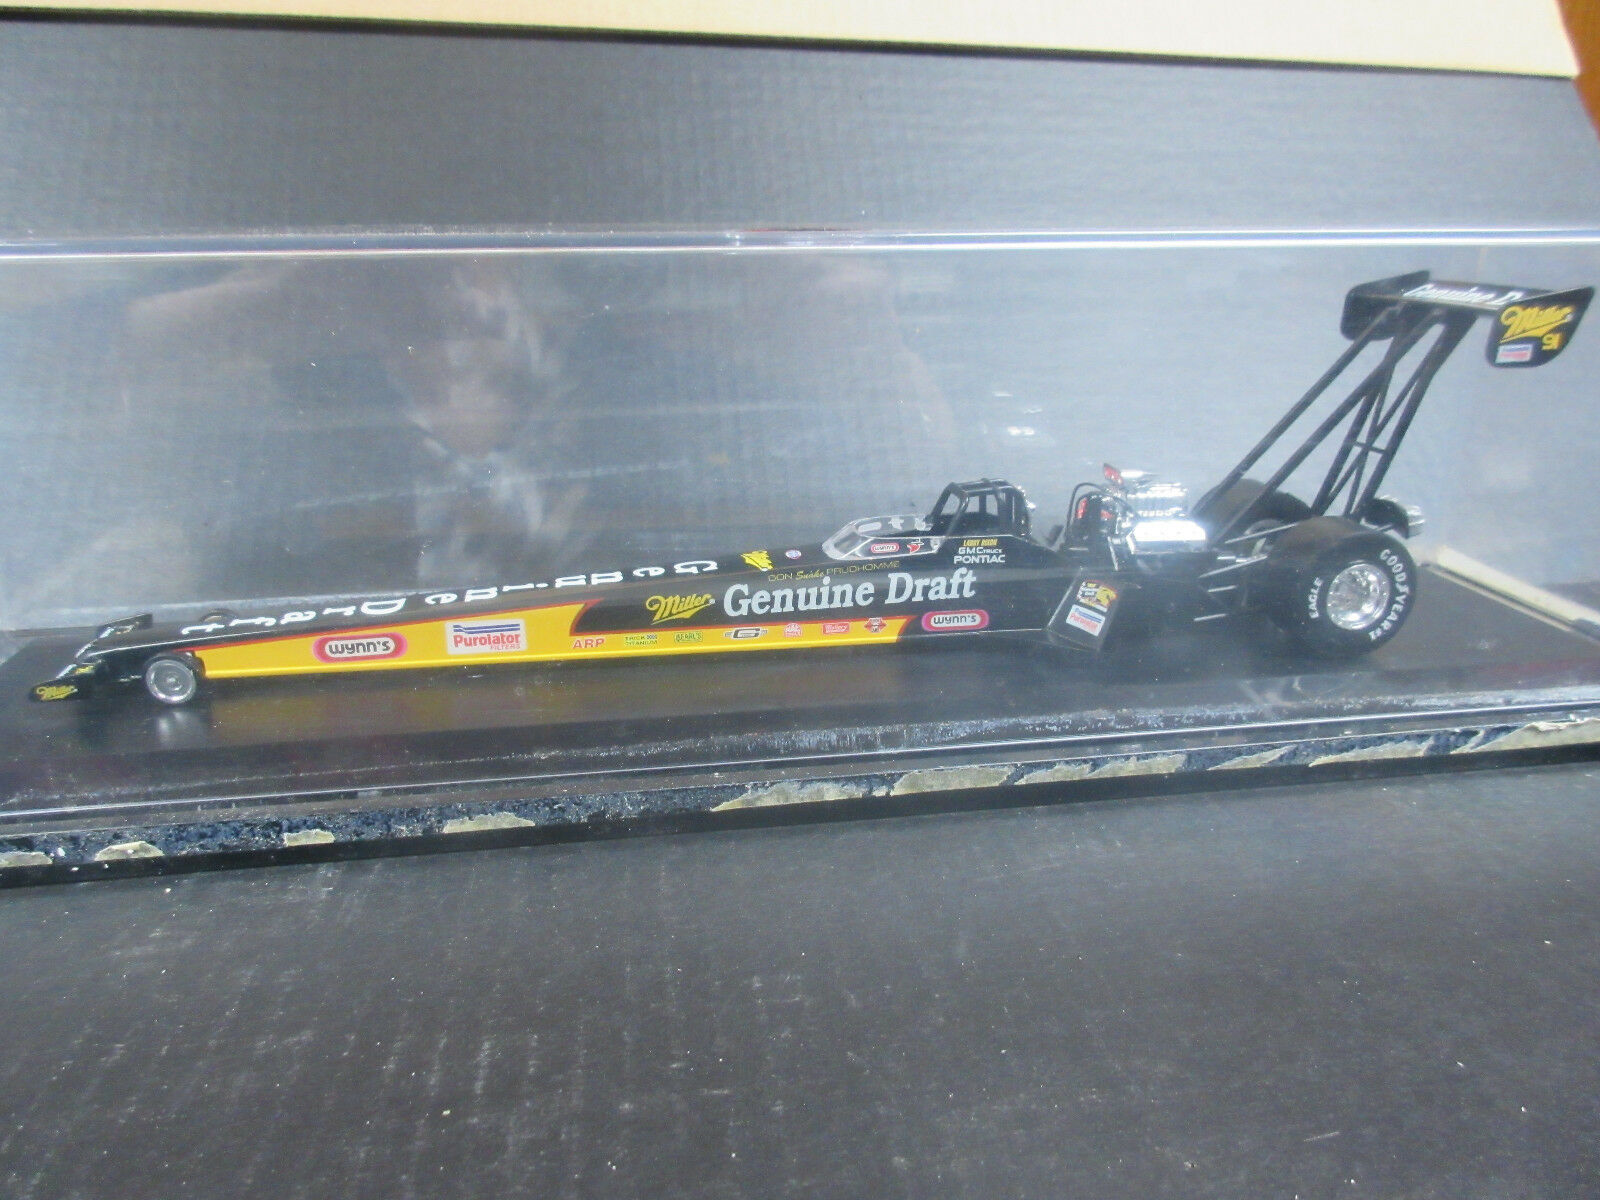 1995 Limited Edition Larry Dixon Jr. Dragster genuine draft 1 24th